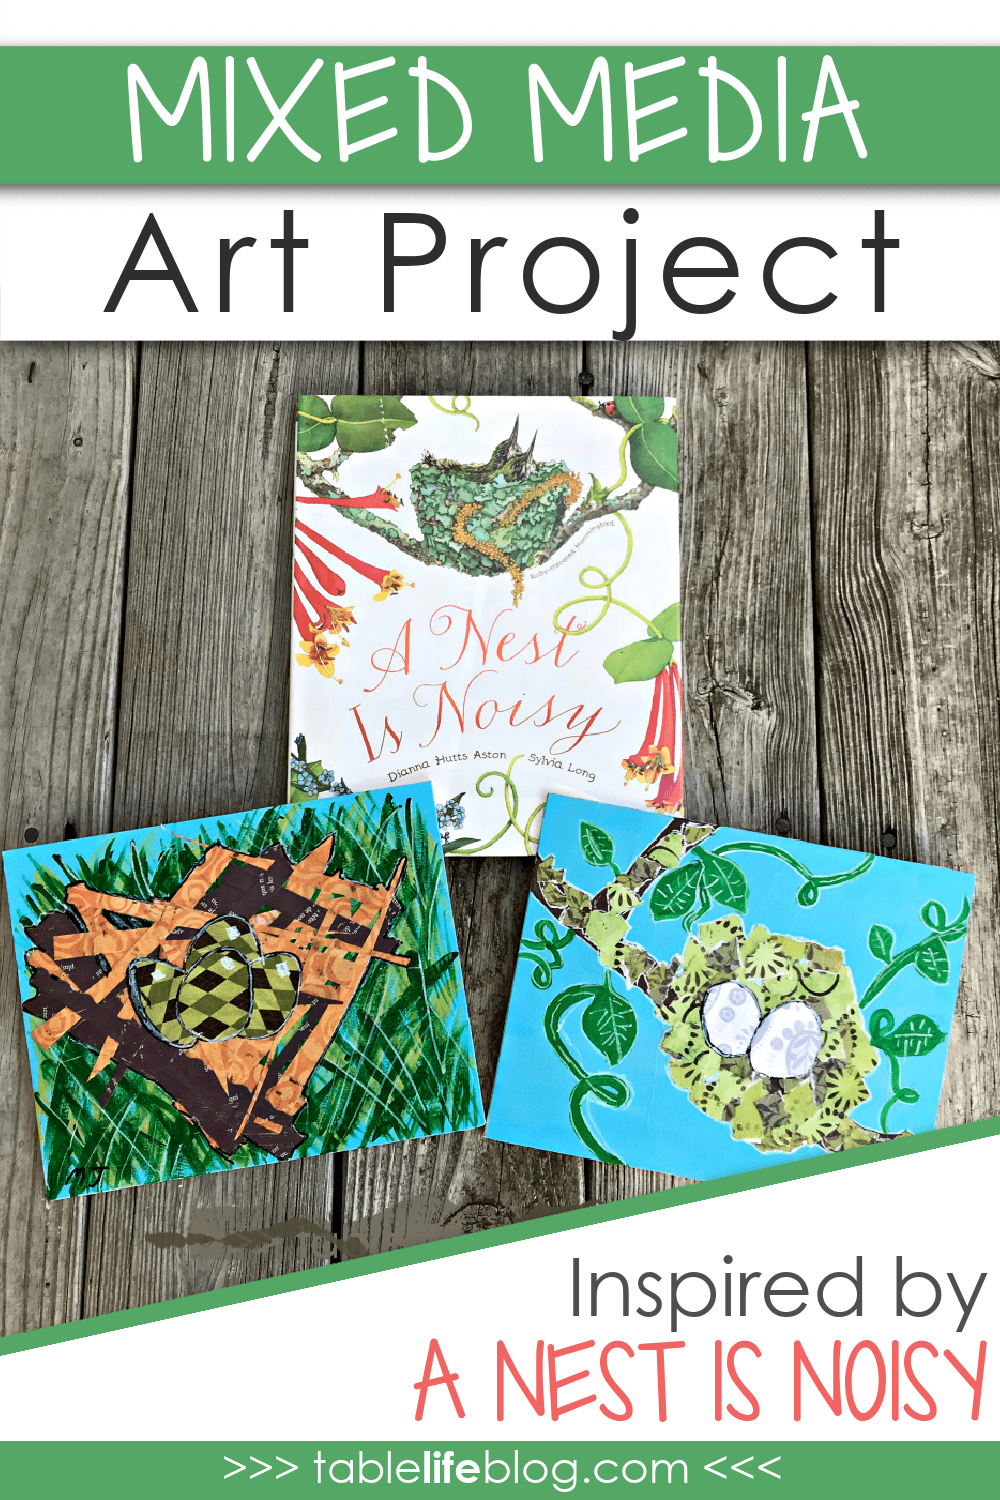 Looking for an easy bird nest art project to do with your kids? Today I'm sharing a fun mixed media project inspired by one of our favorite books, A Nest Is Noisy.